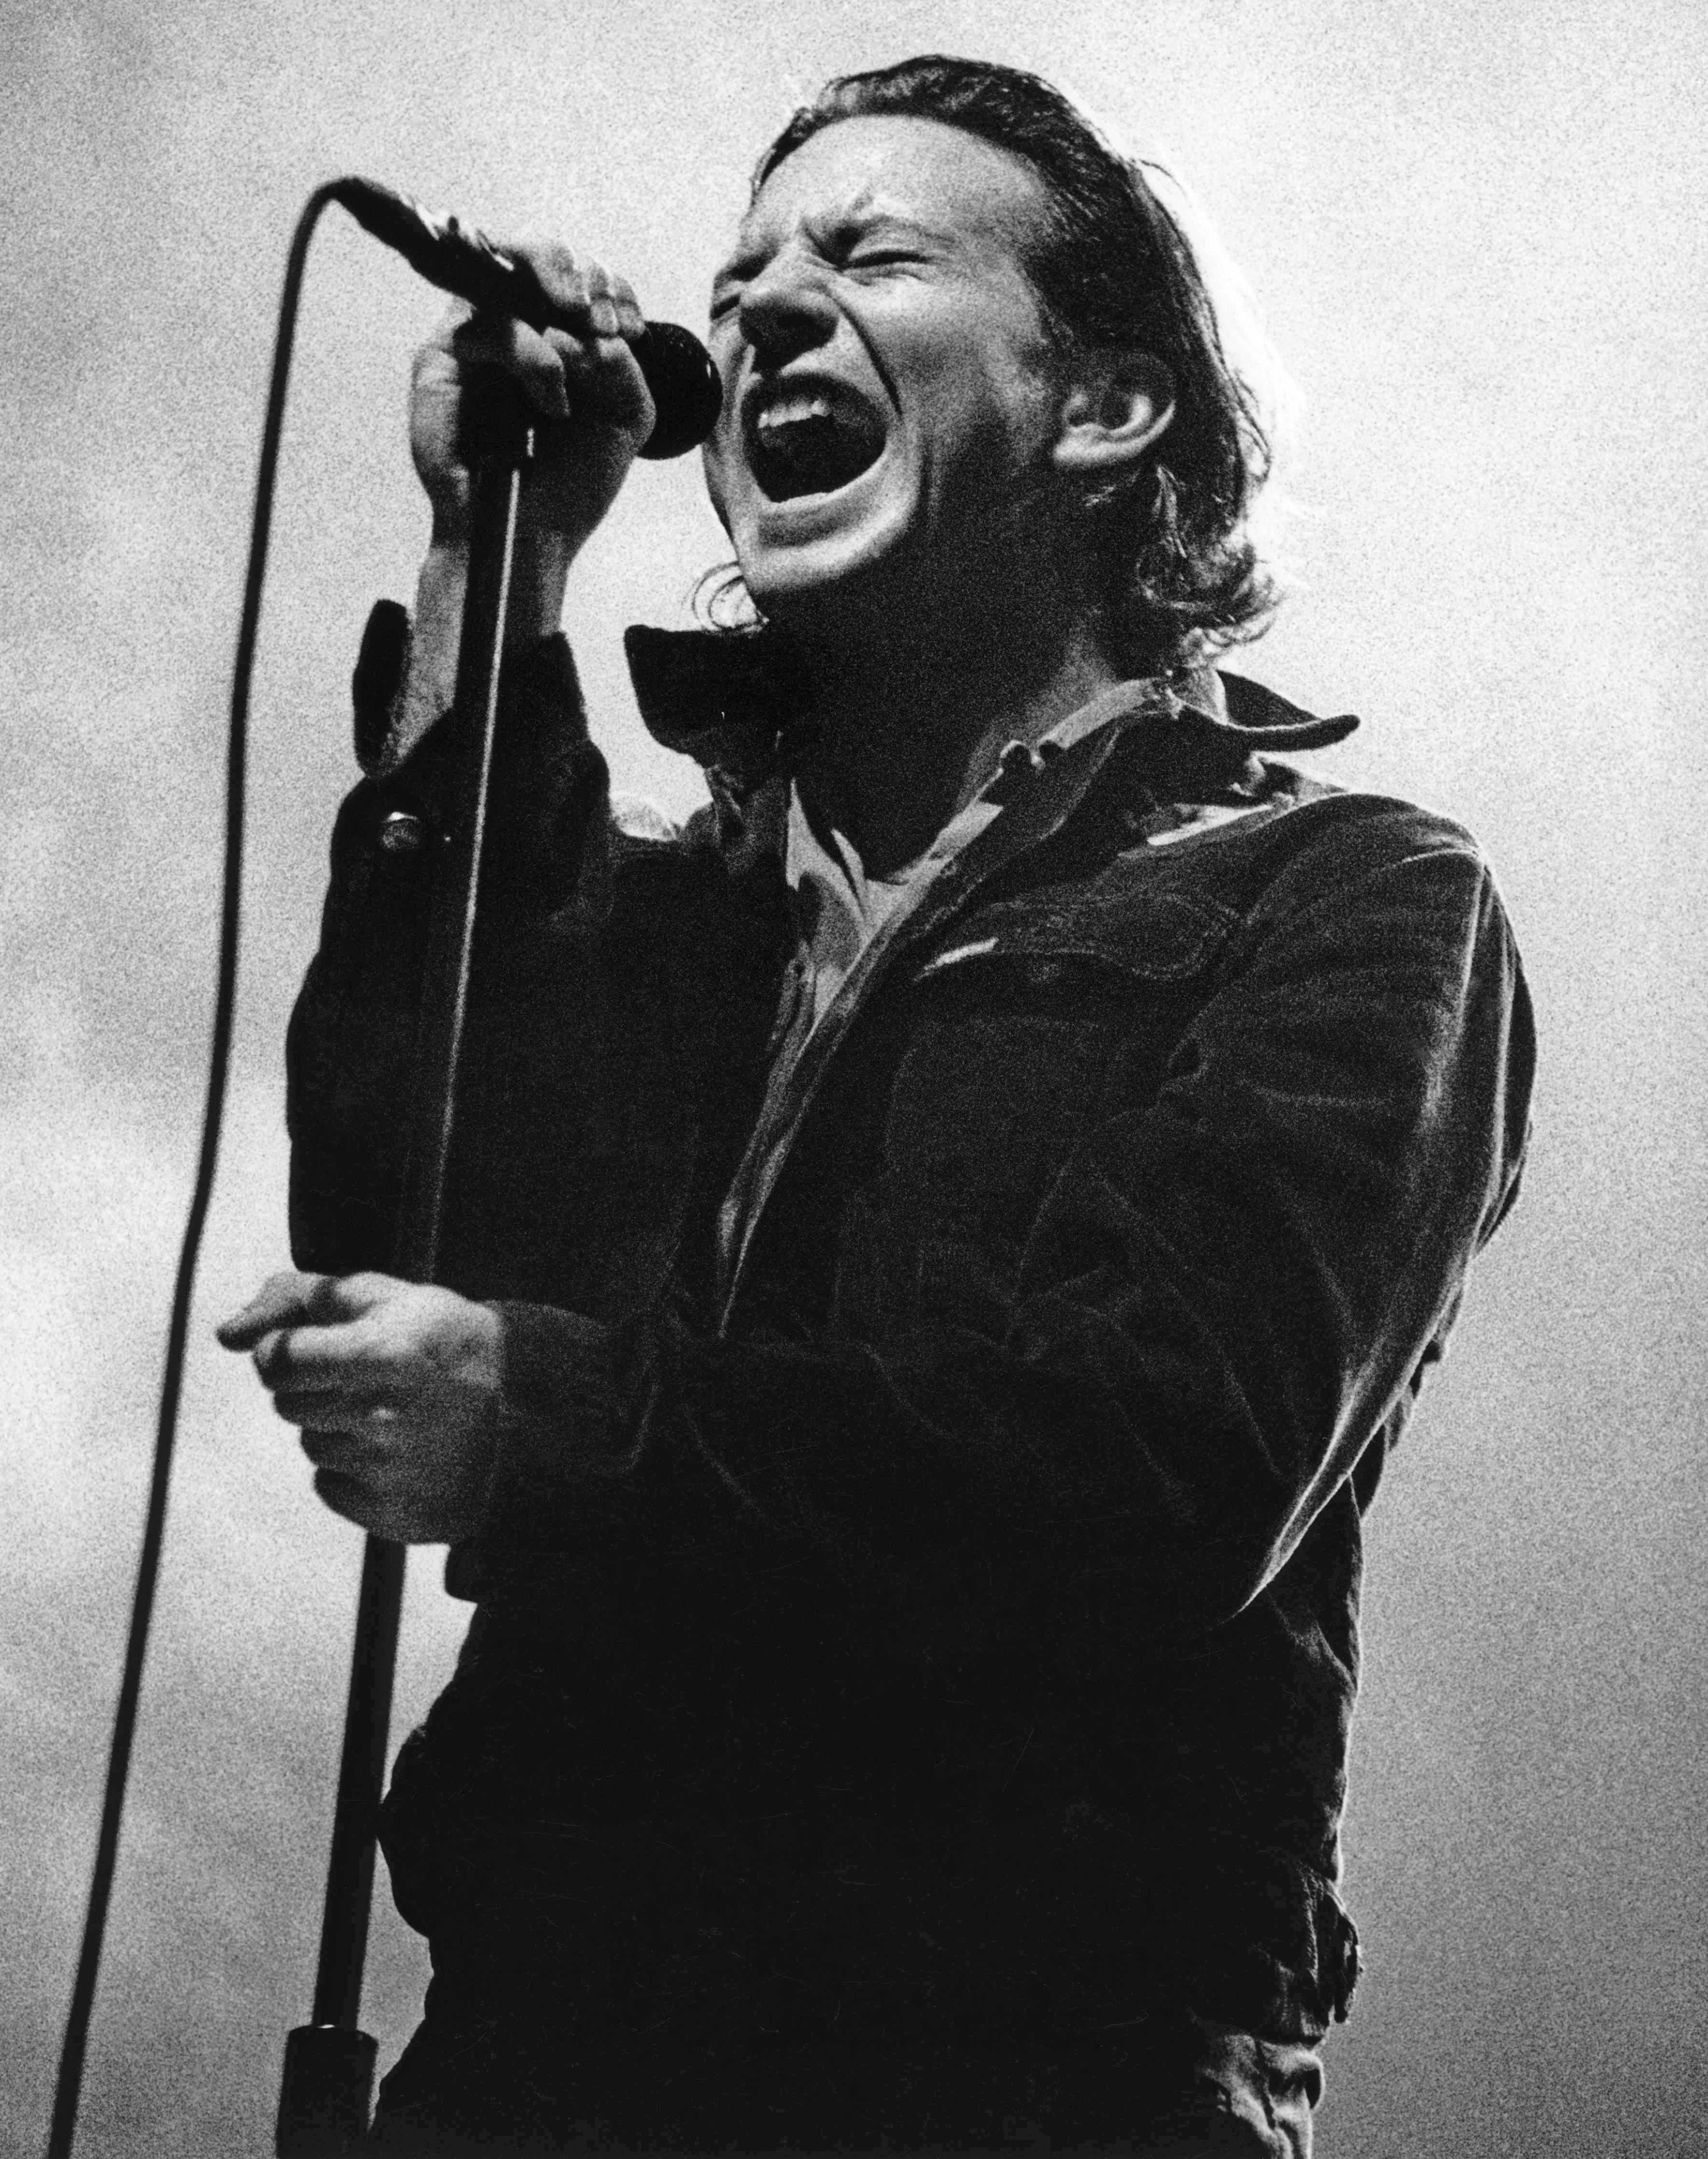 Eddie Vedder: Who Are You? – Rolling Stone